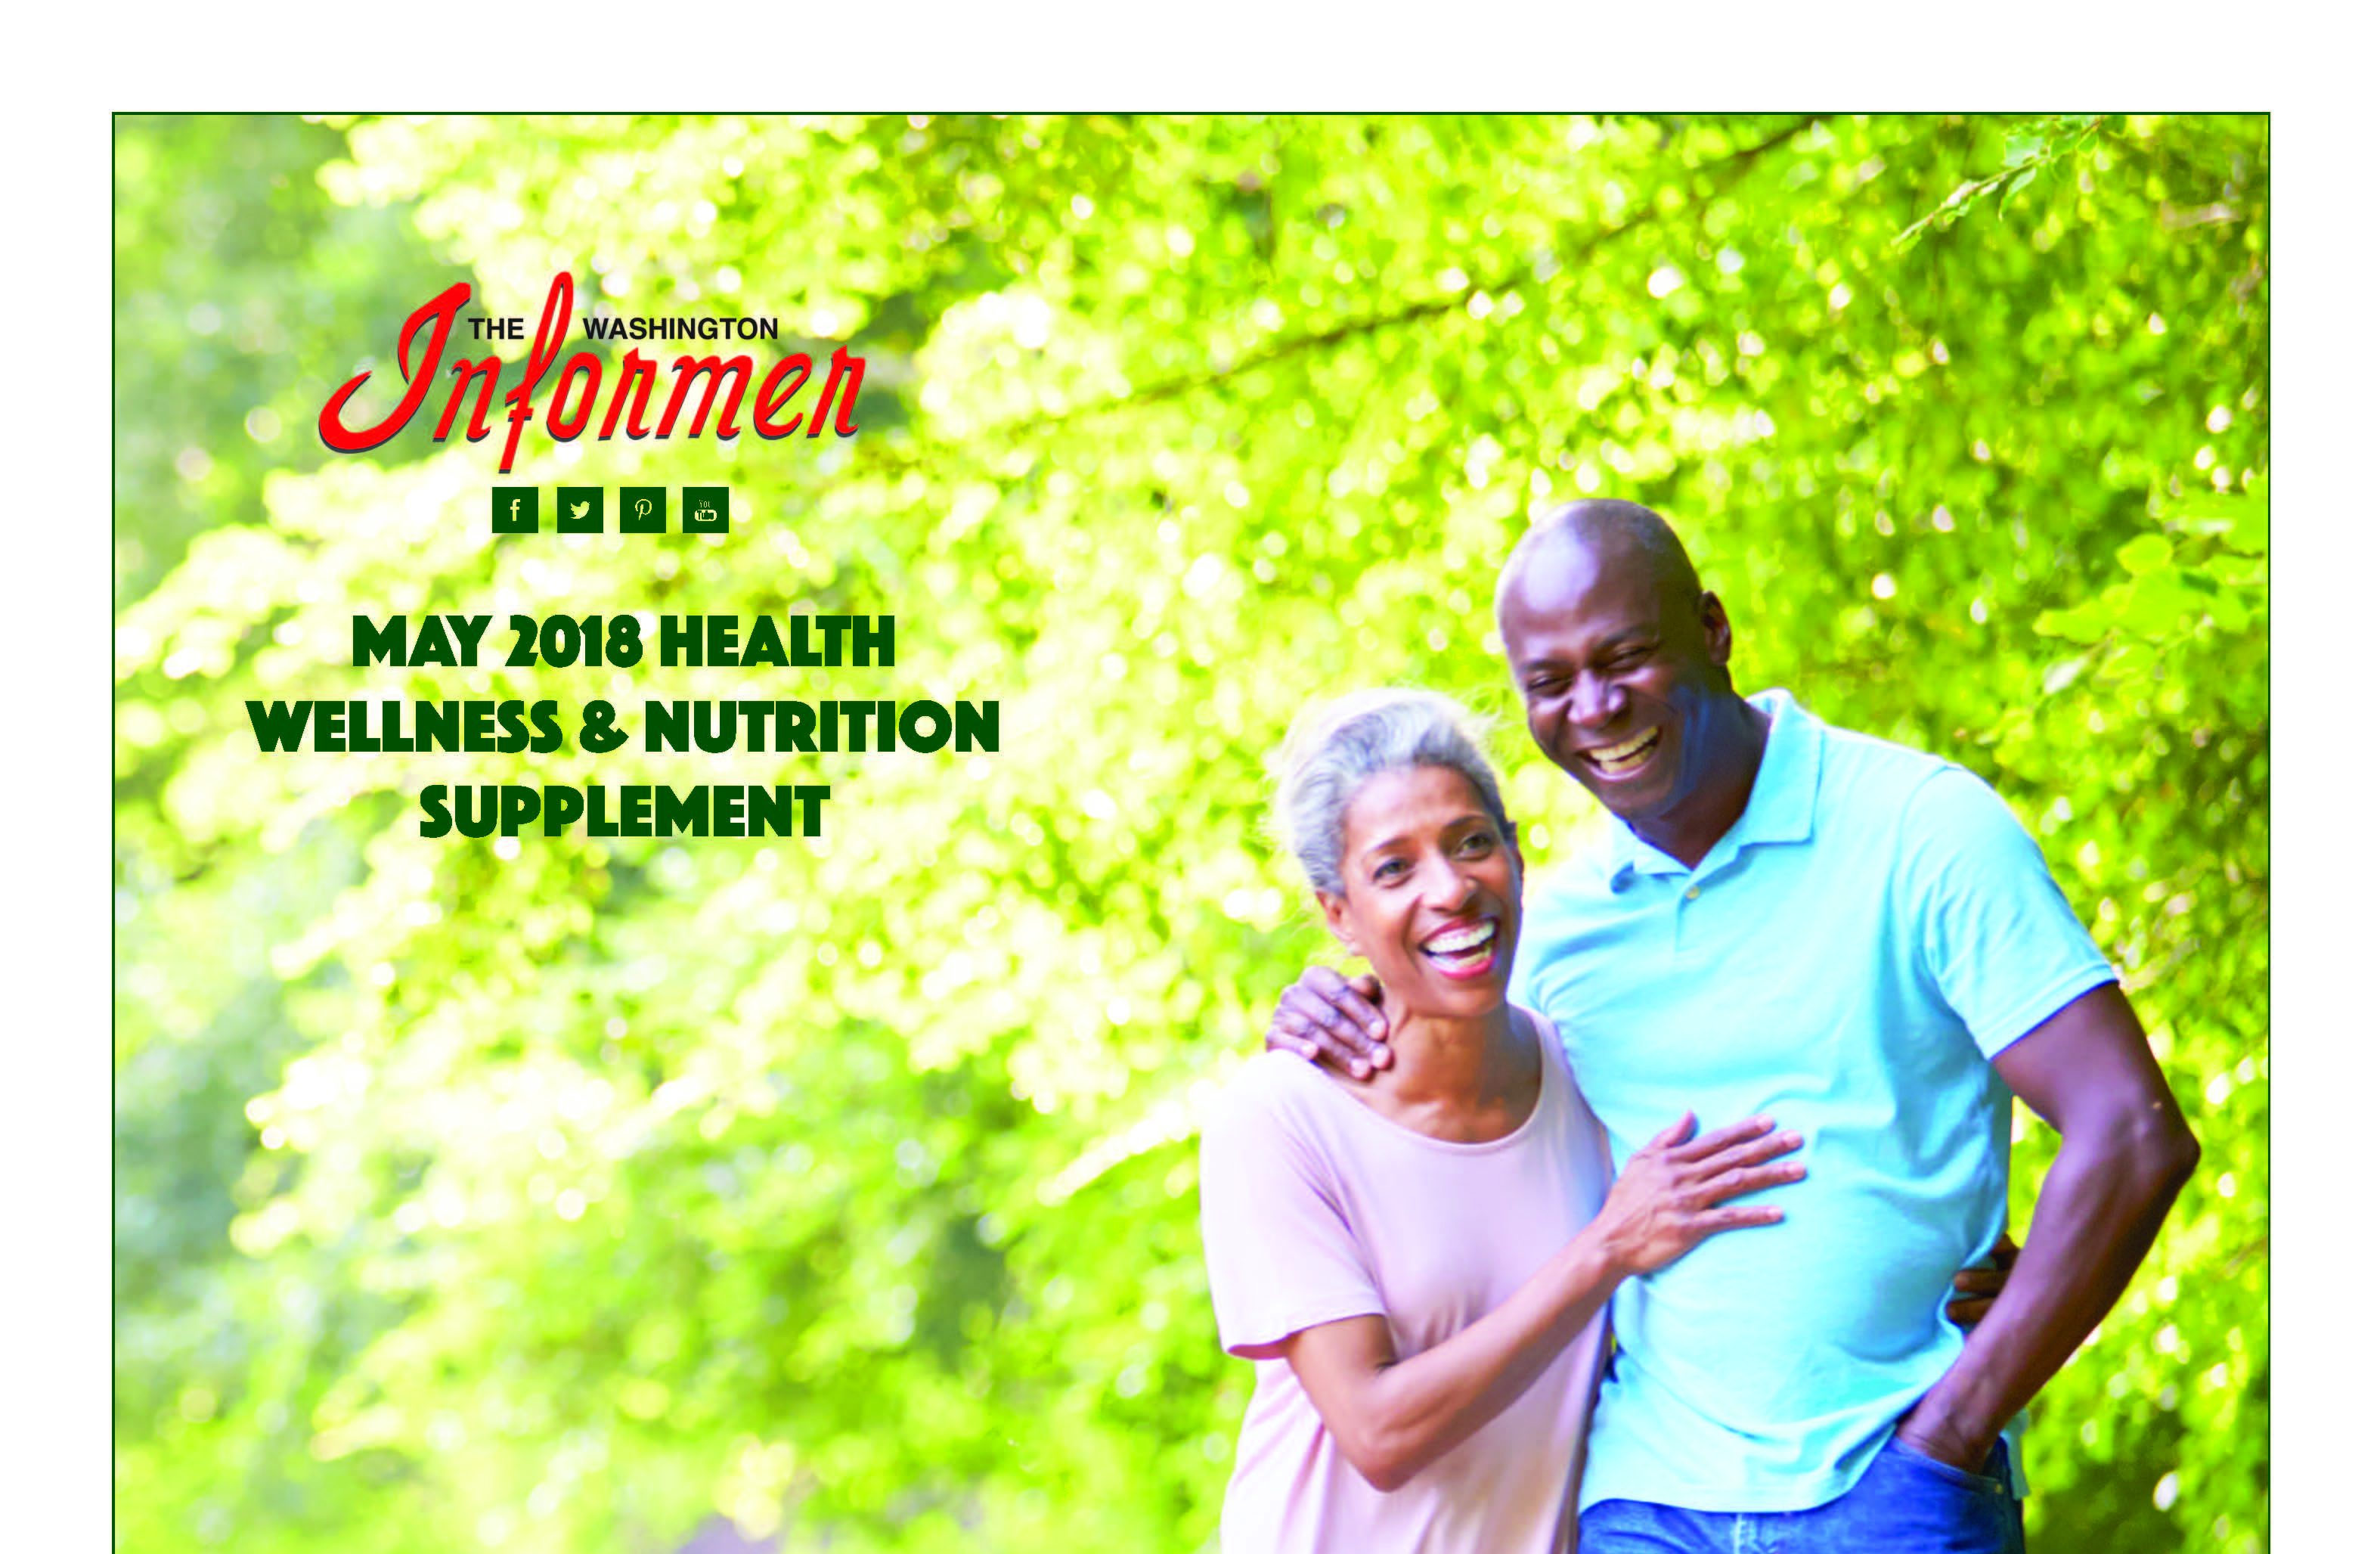 Photo of May 2018 Health, Wellness & Nutrition Supplement